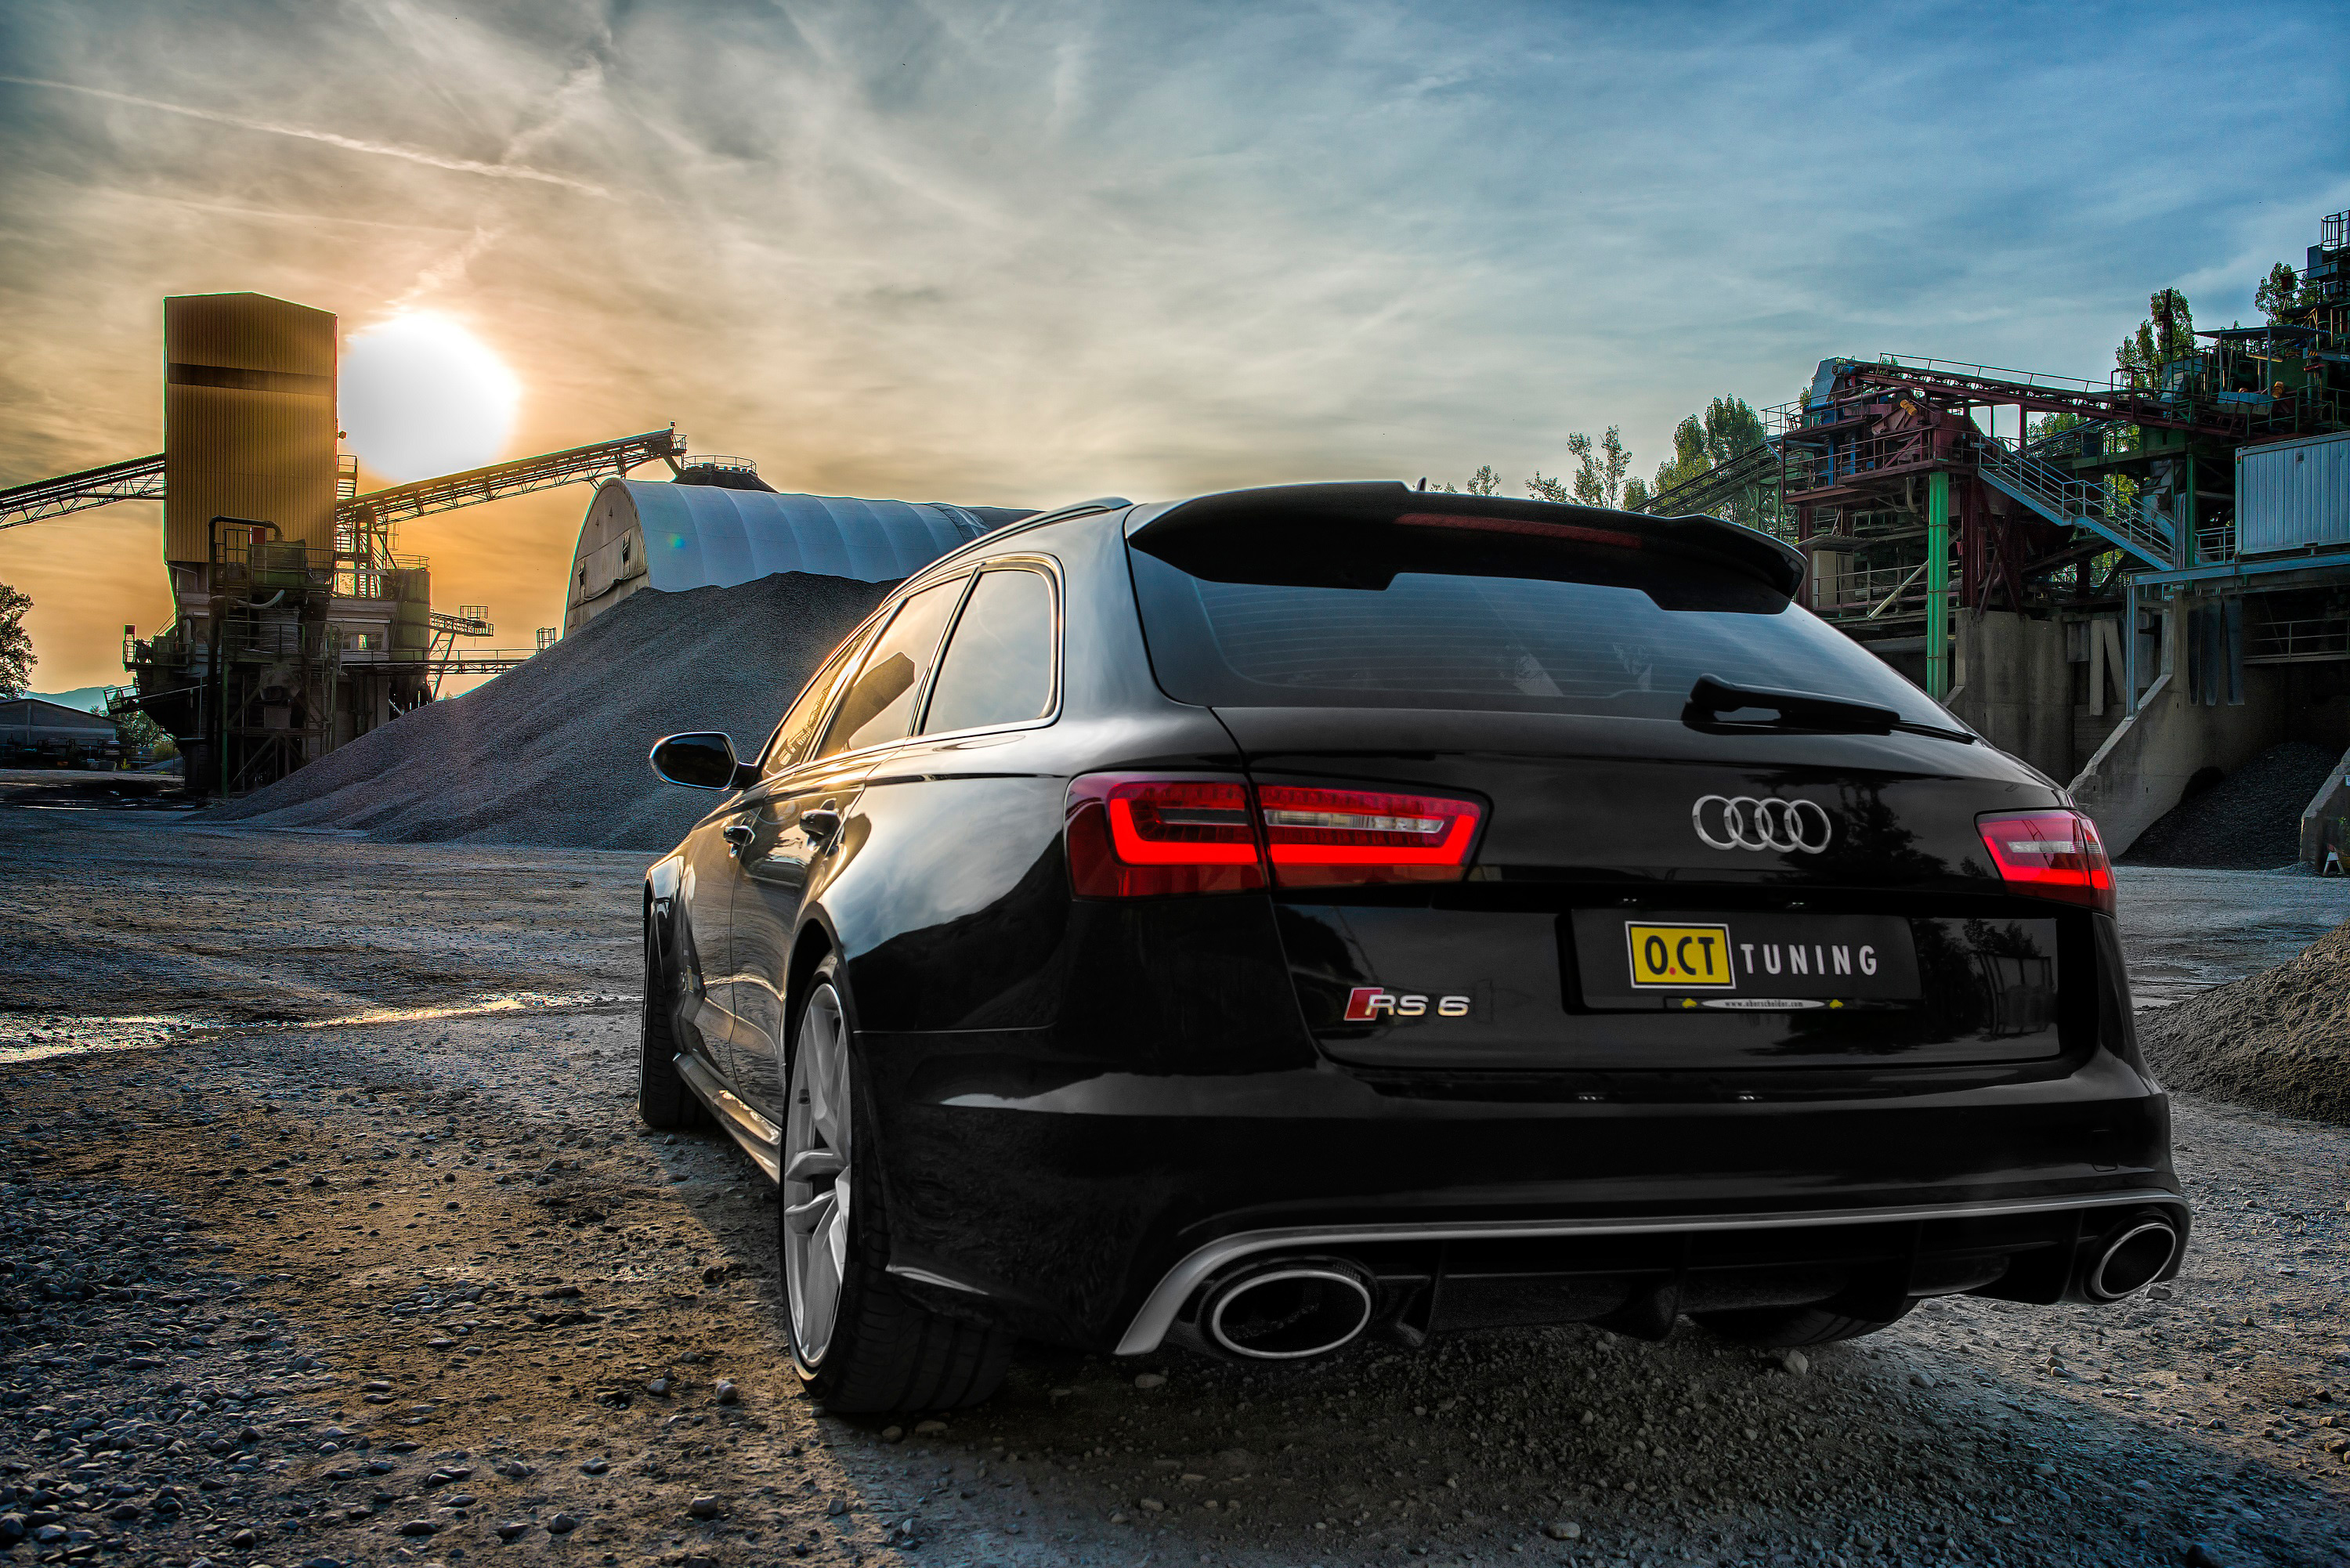 oct tuning audi rs6 670hp and 880nm. Black Bedroom Furniture Sets. Home Design Ideas